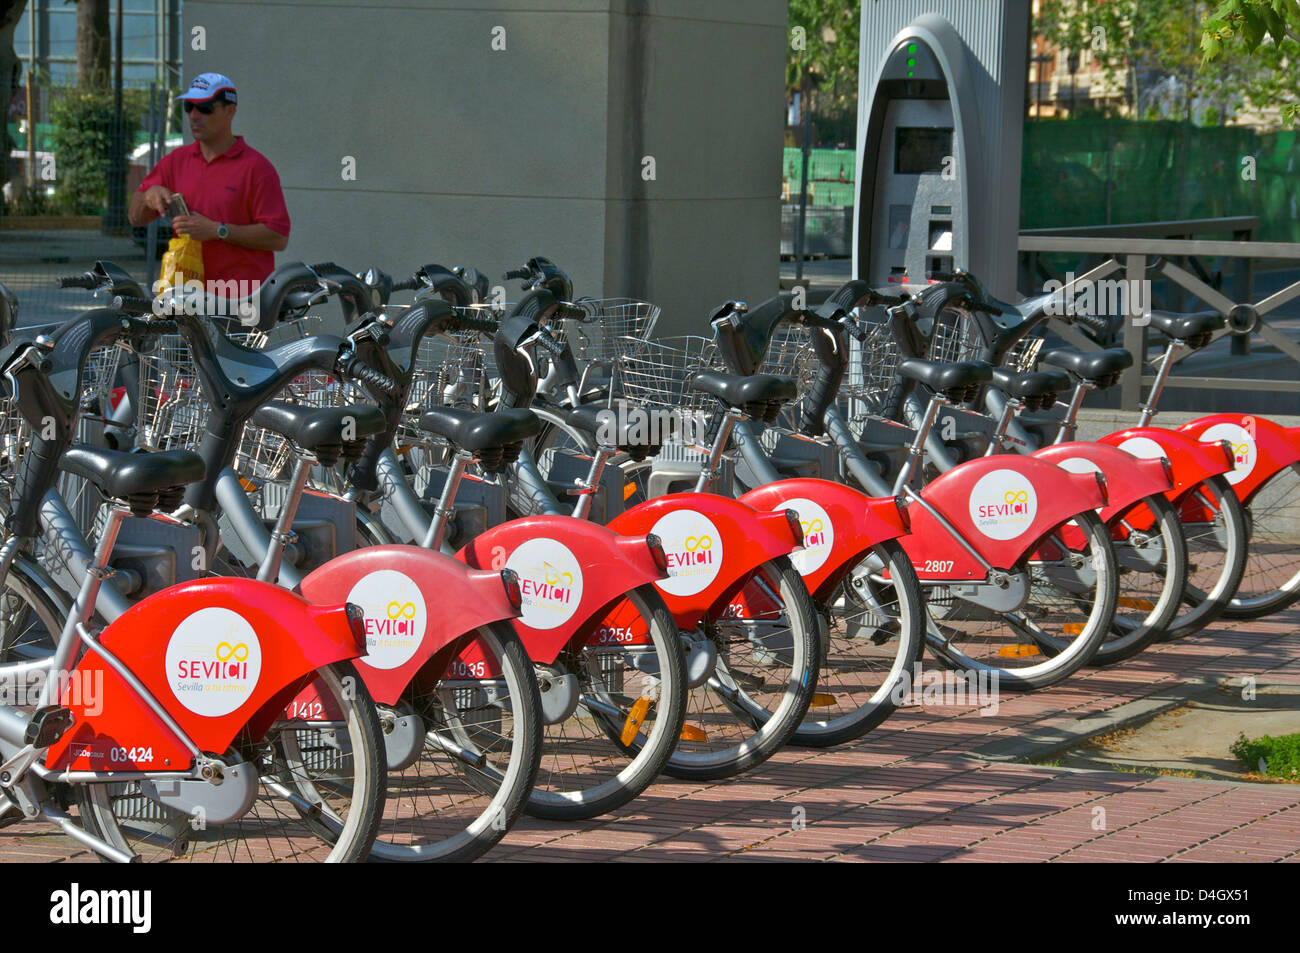 Parked Red Bikes for hire, Seville, Andalusia, Spain - Stock Image